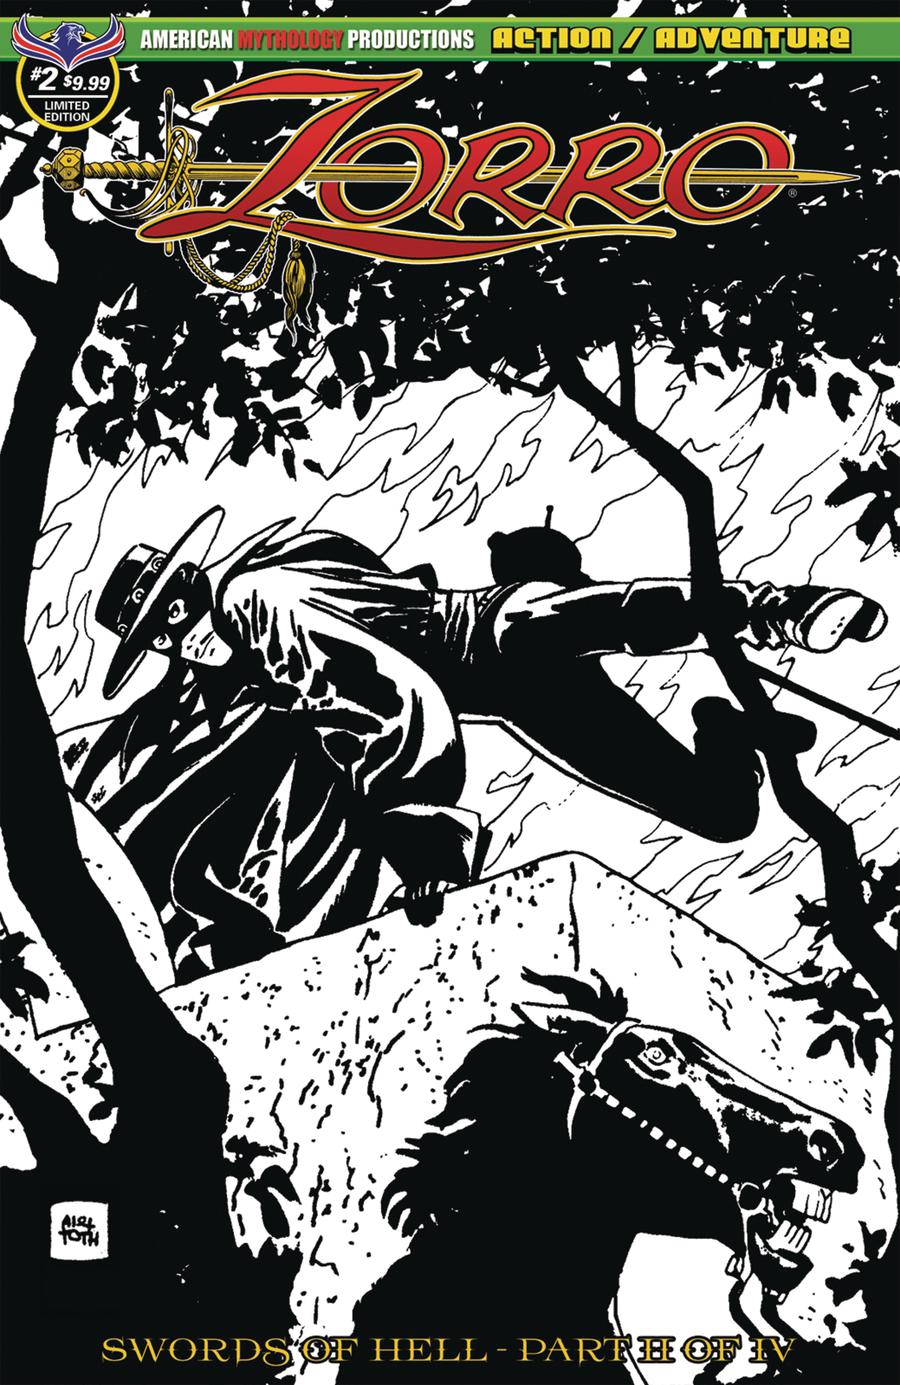 Zorro Swords Of Hell #2 Cover B Variant Alex Toth Visions Of Zorro Limited Edition Cover